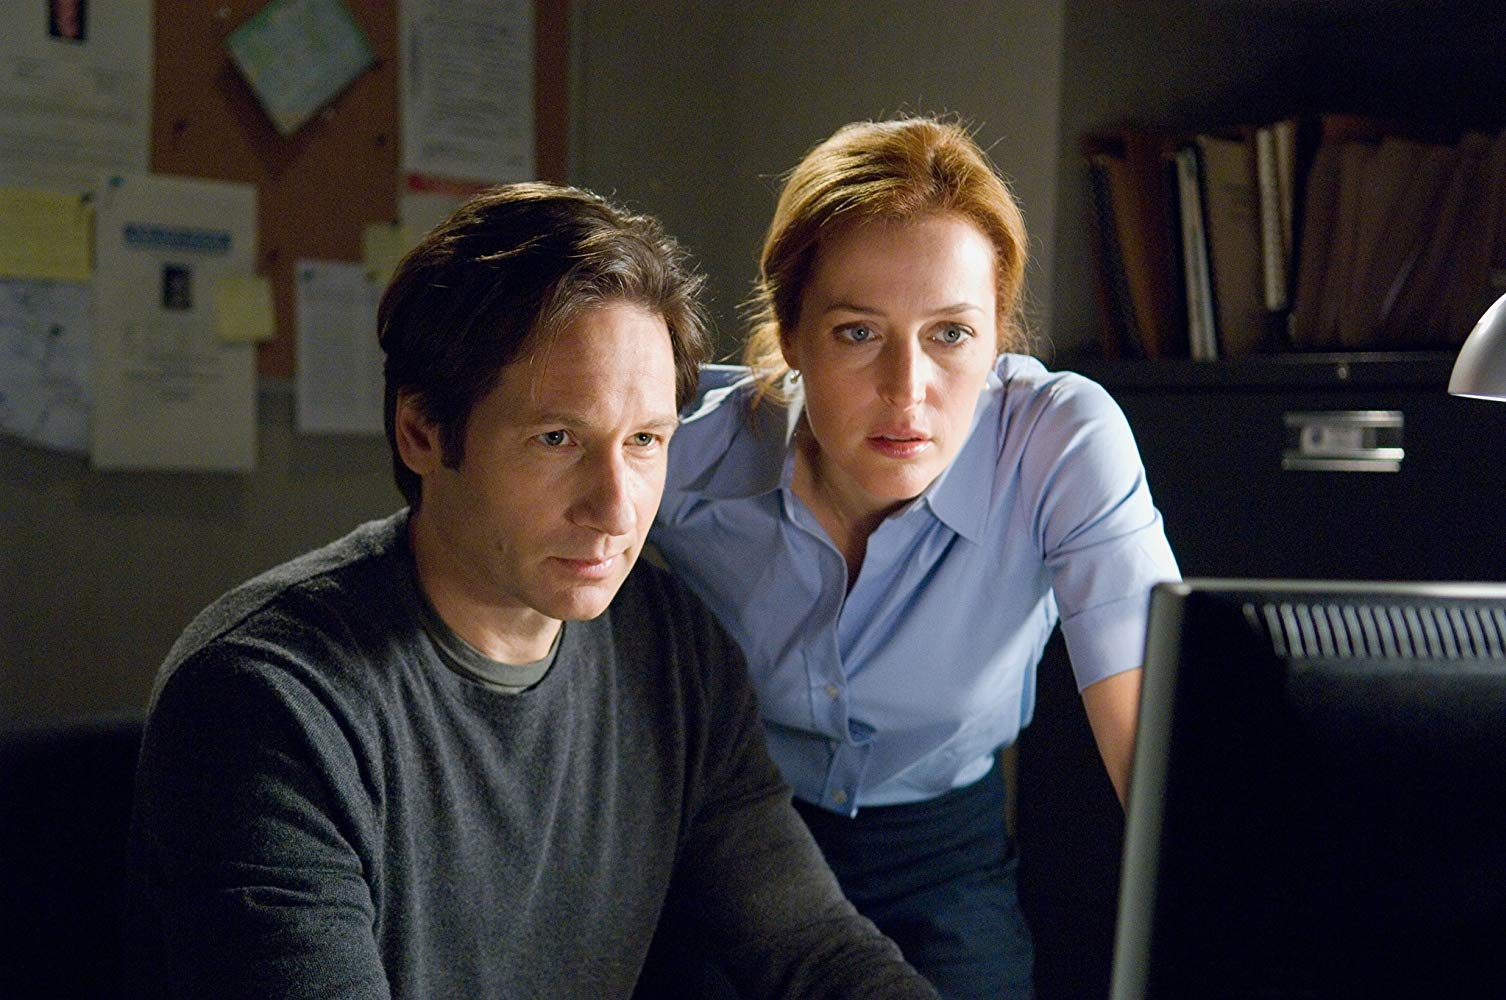 FBI agents Fox Mulder (David Duchovny) and Dana Scully (Gillian Anderson) in The X Files: I Want to Believe (2008)